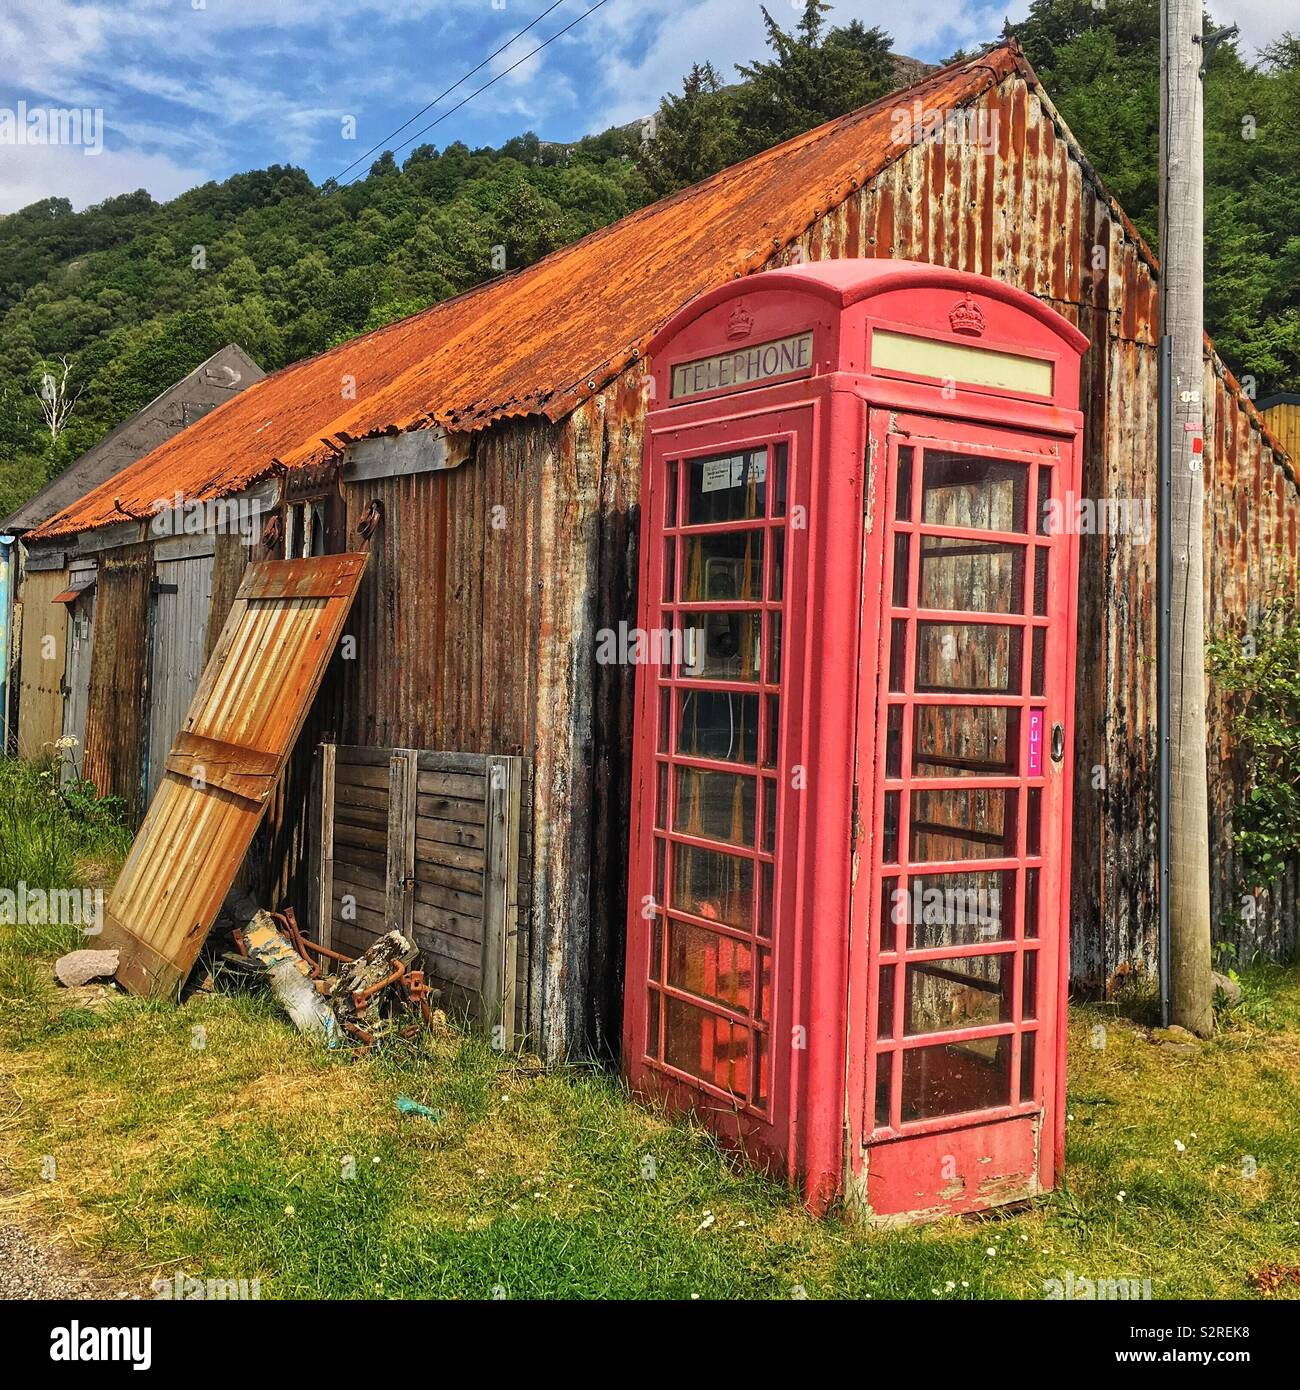 Red telephone box against dilapidated buildings. - Stock Image